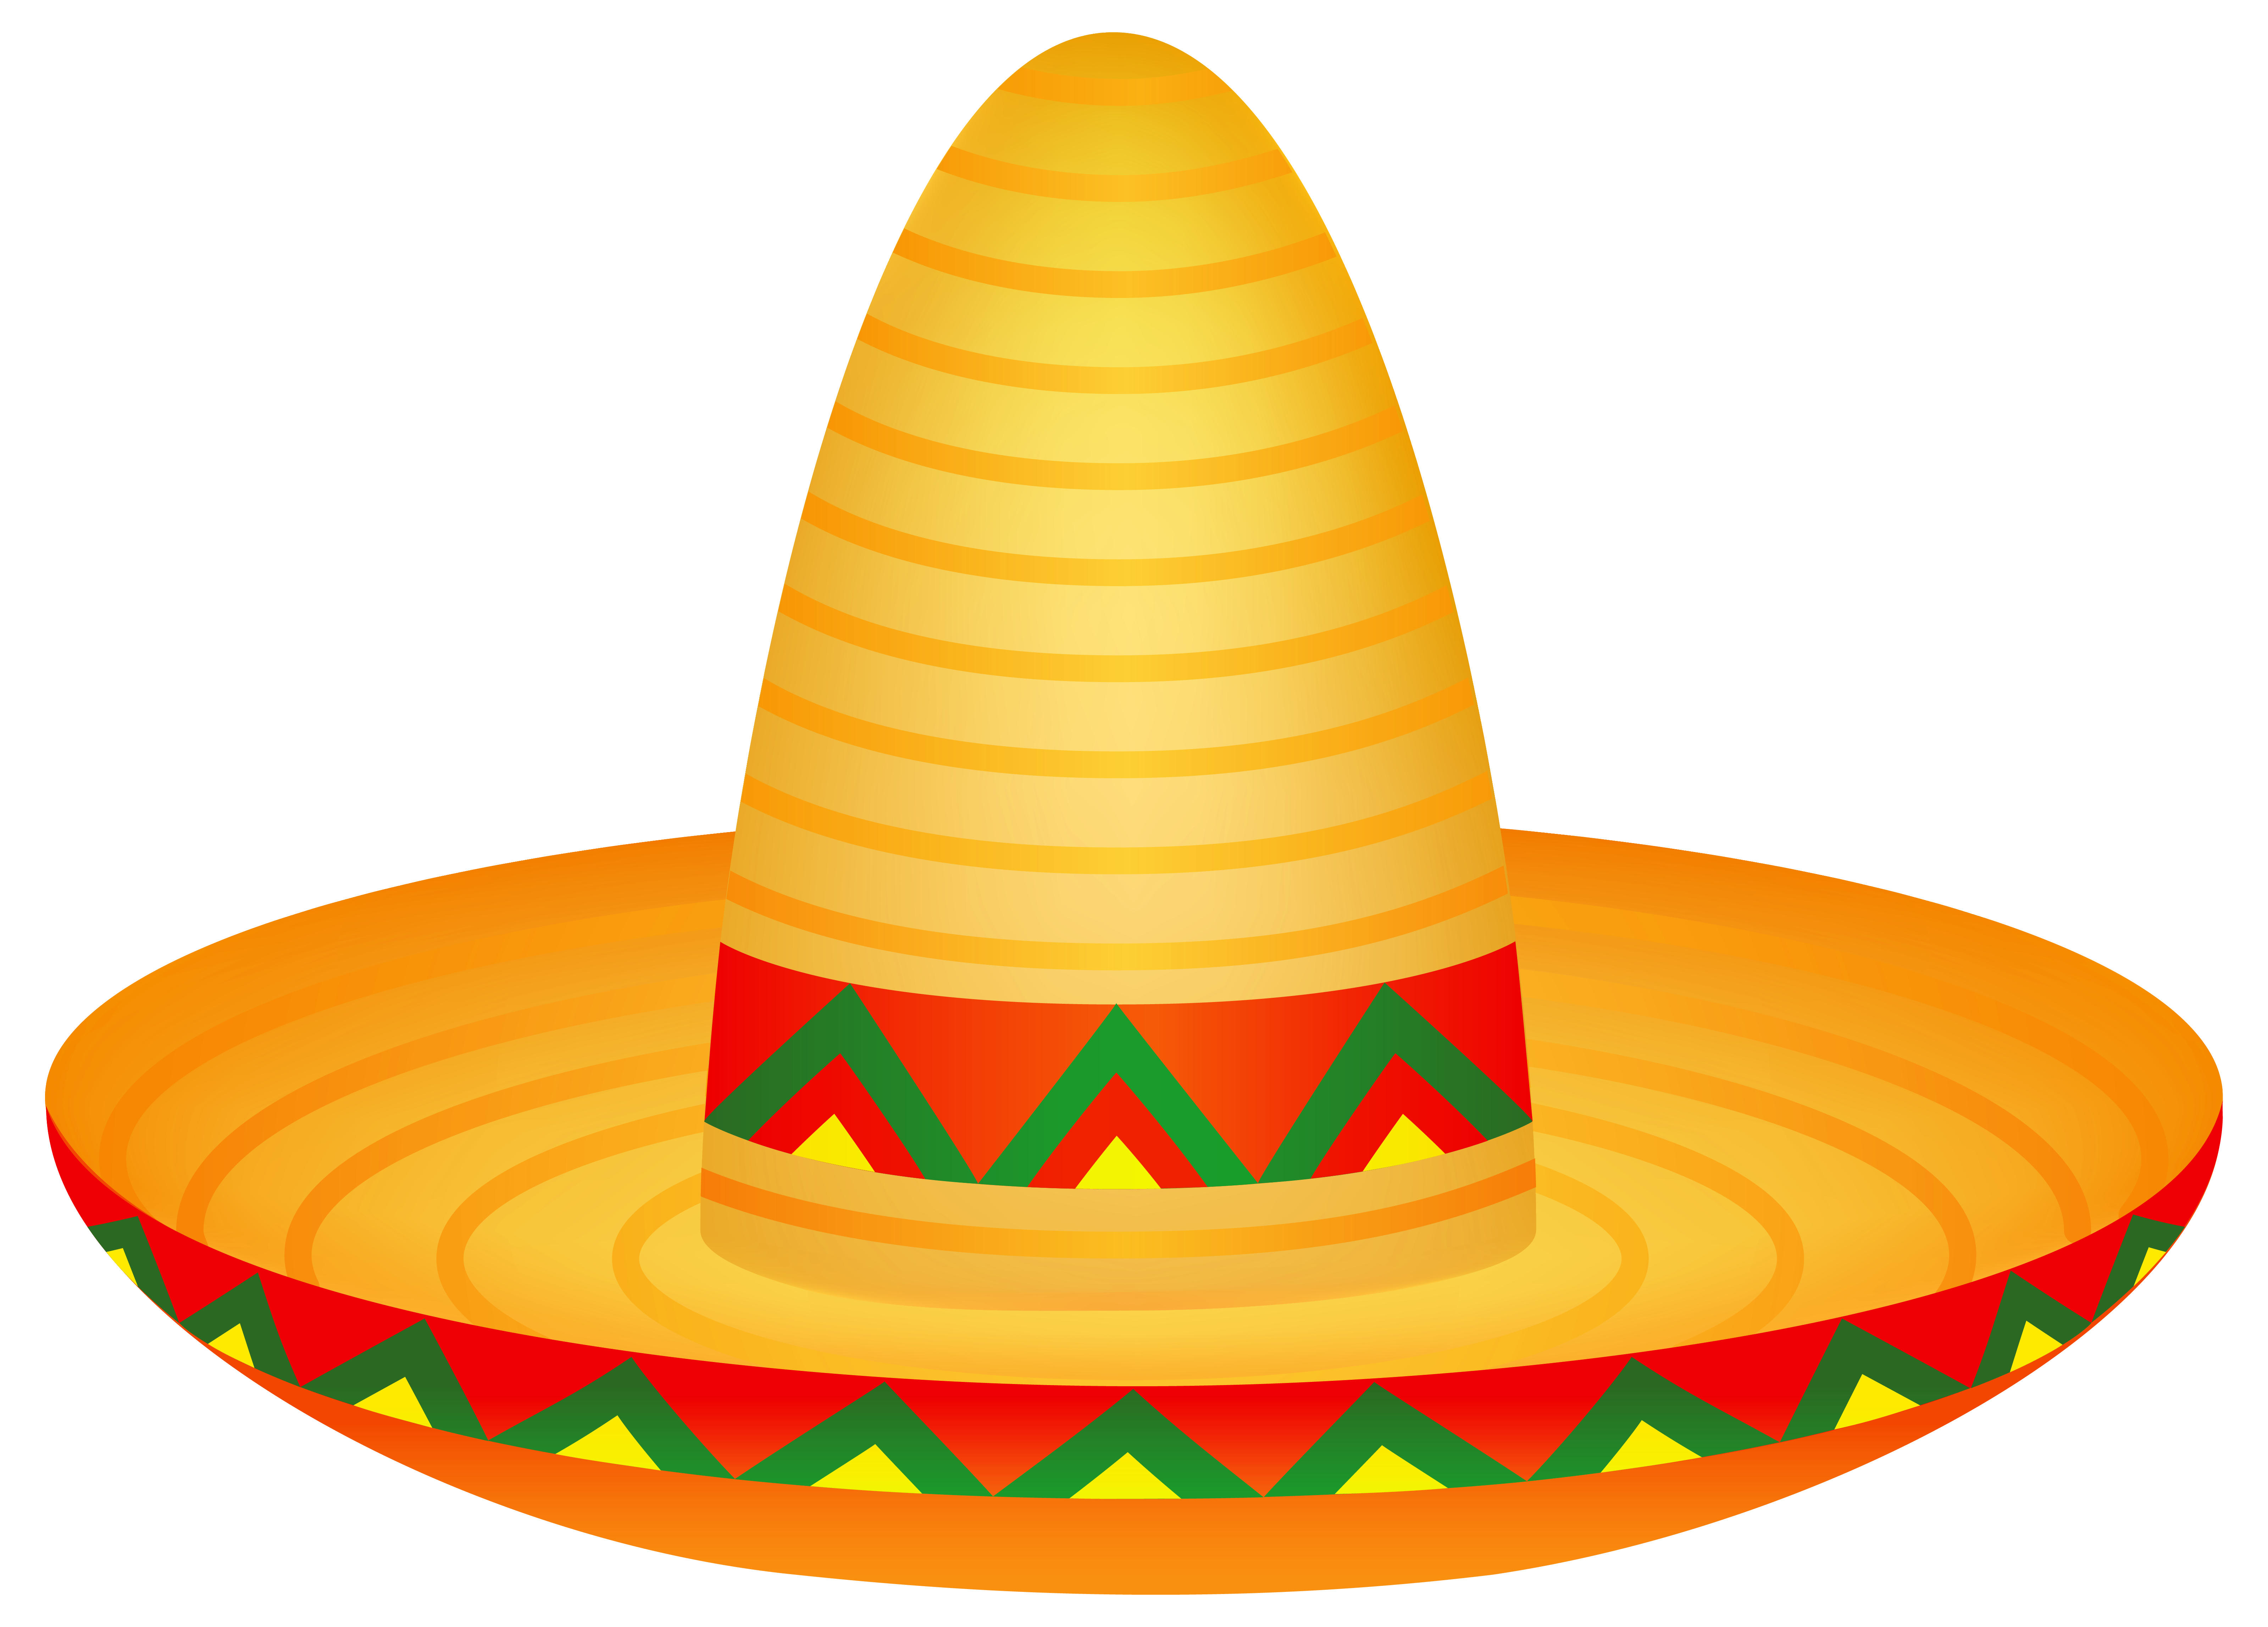 Wanted guy clipart sombero vector royalty free library Mexican Sombrero PNG Clipart Image | Gallery Yopriceville - High ... vector royalty free library